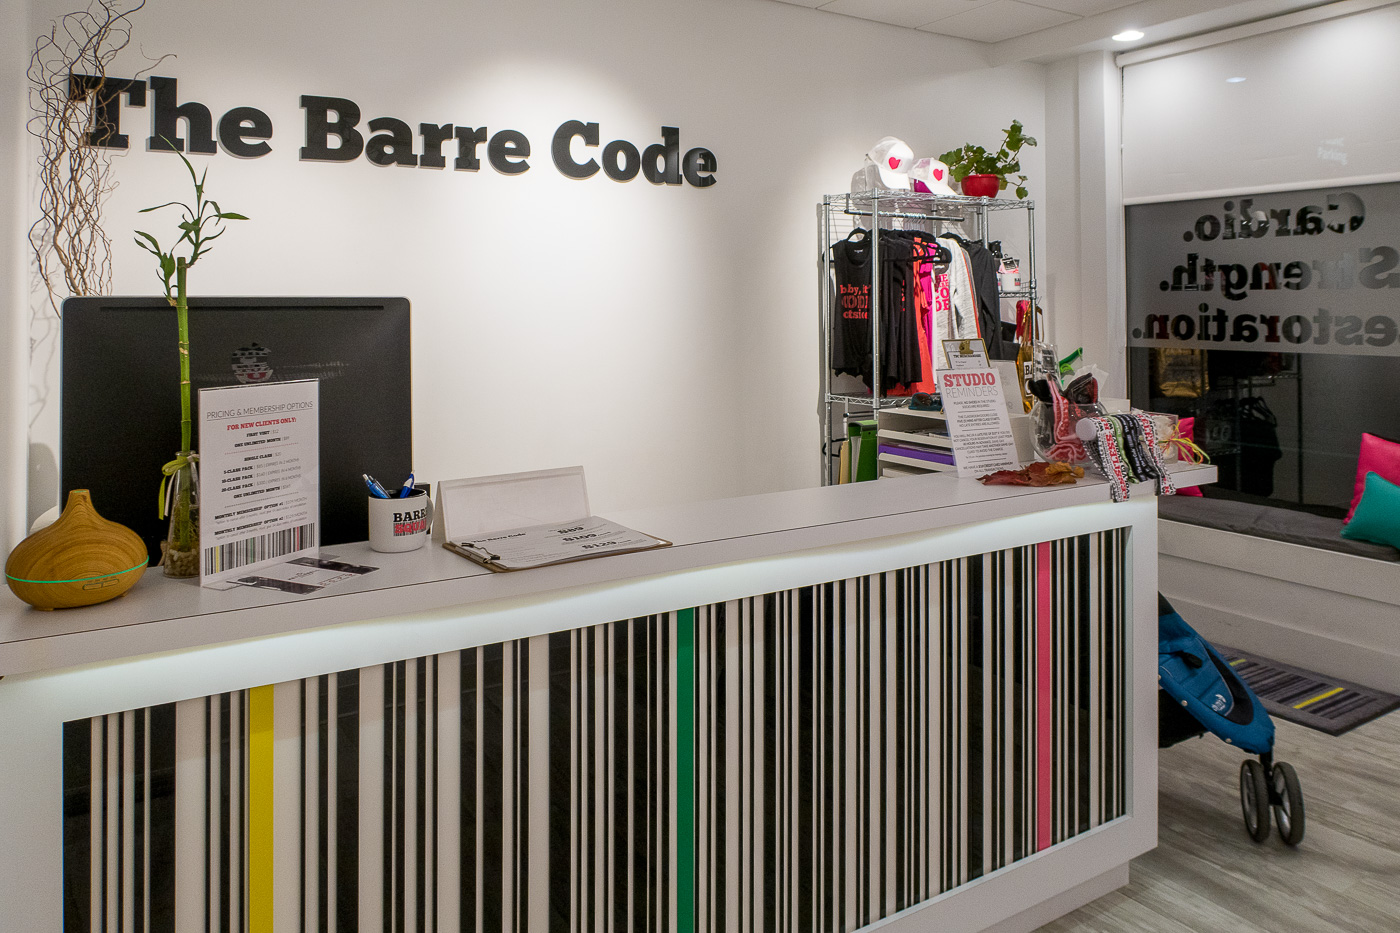 The Barre Code Cincinnati